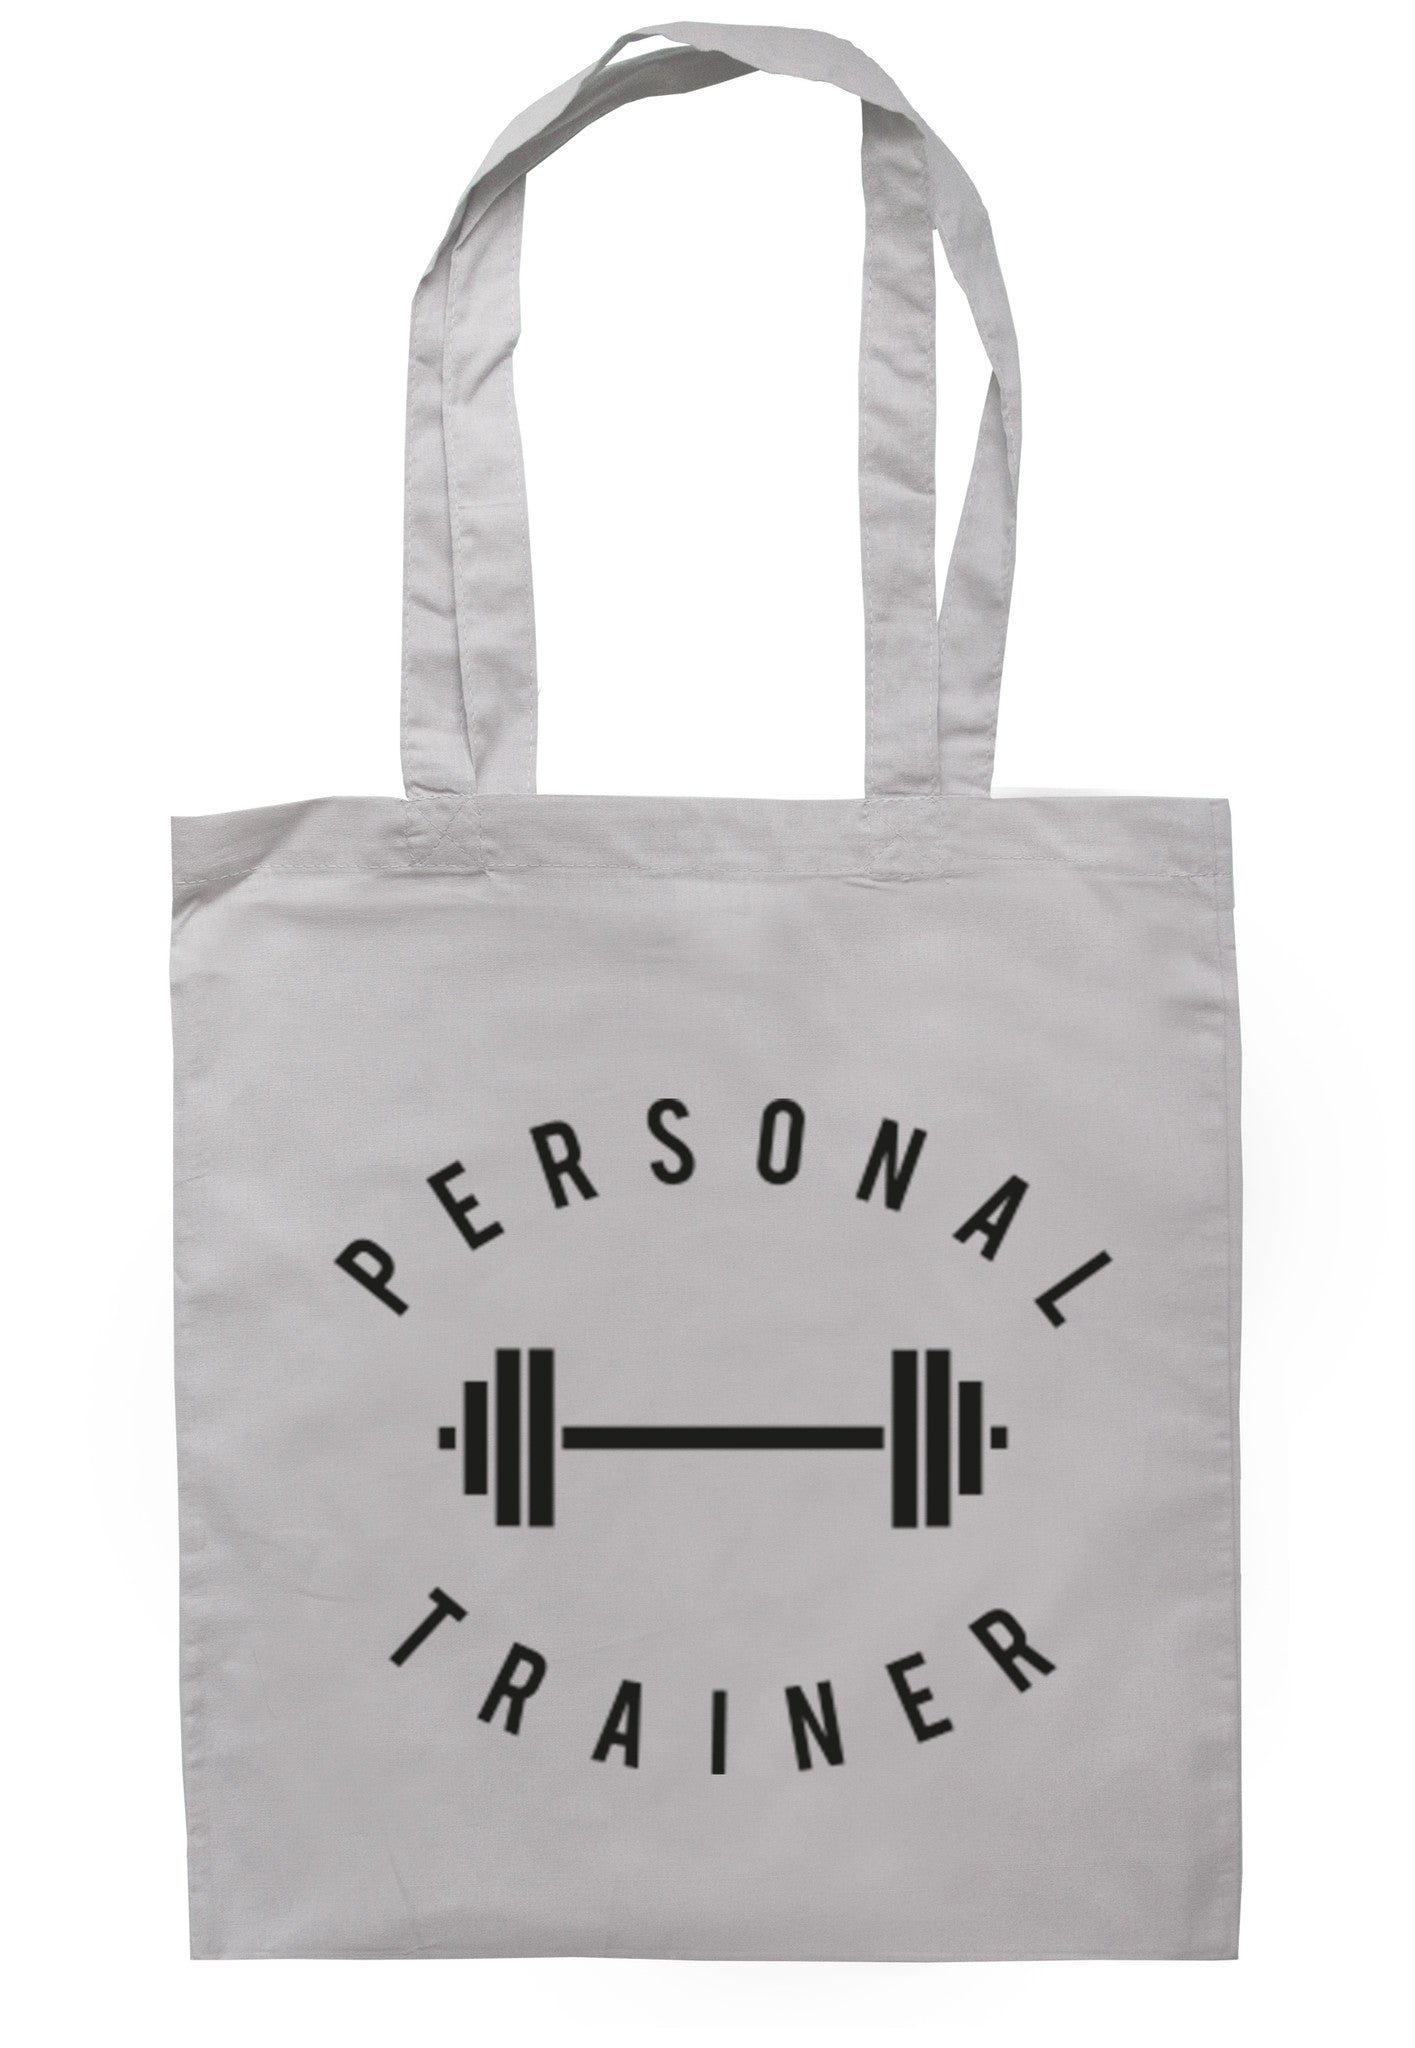 Personal Trainer Tote Bag TB0070 - Illustrated Identity Ltd.